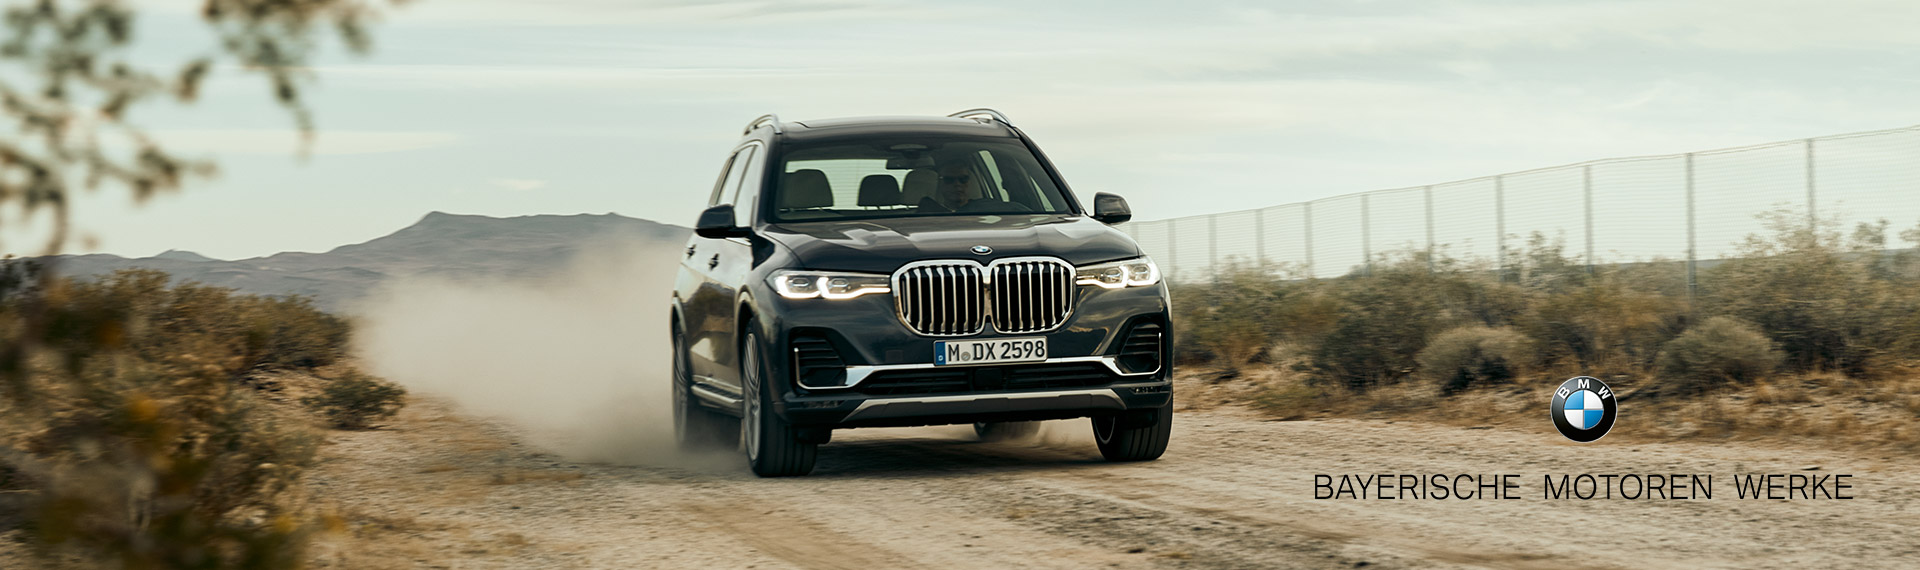 The BMW X7 Front Shot